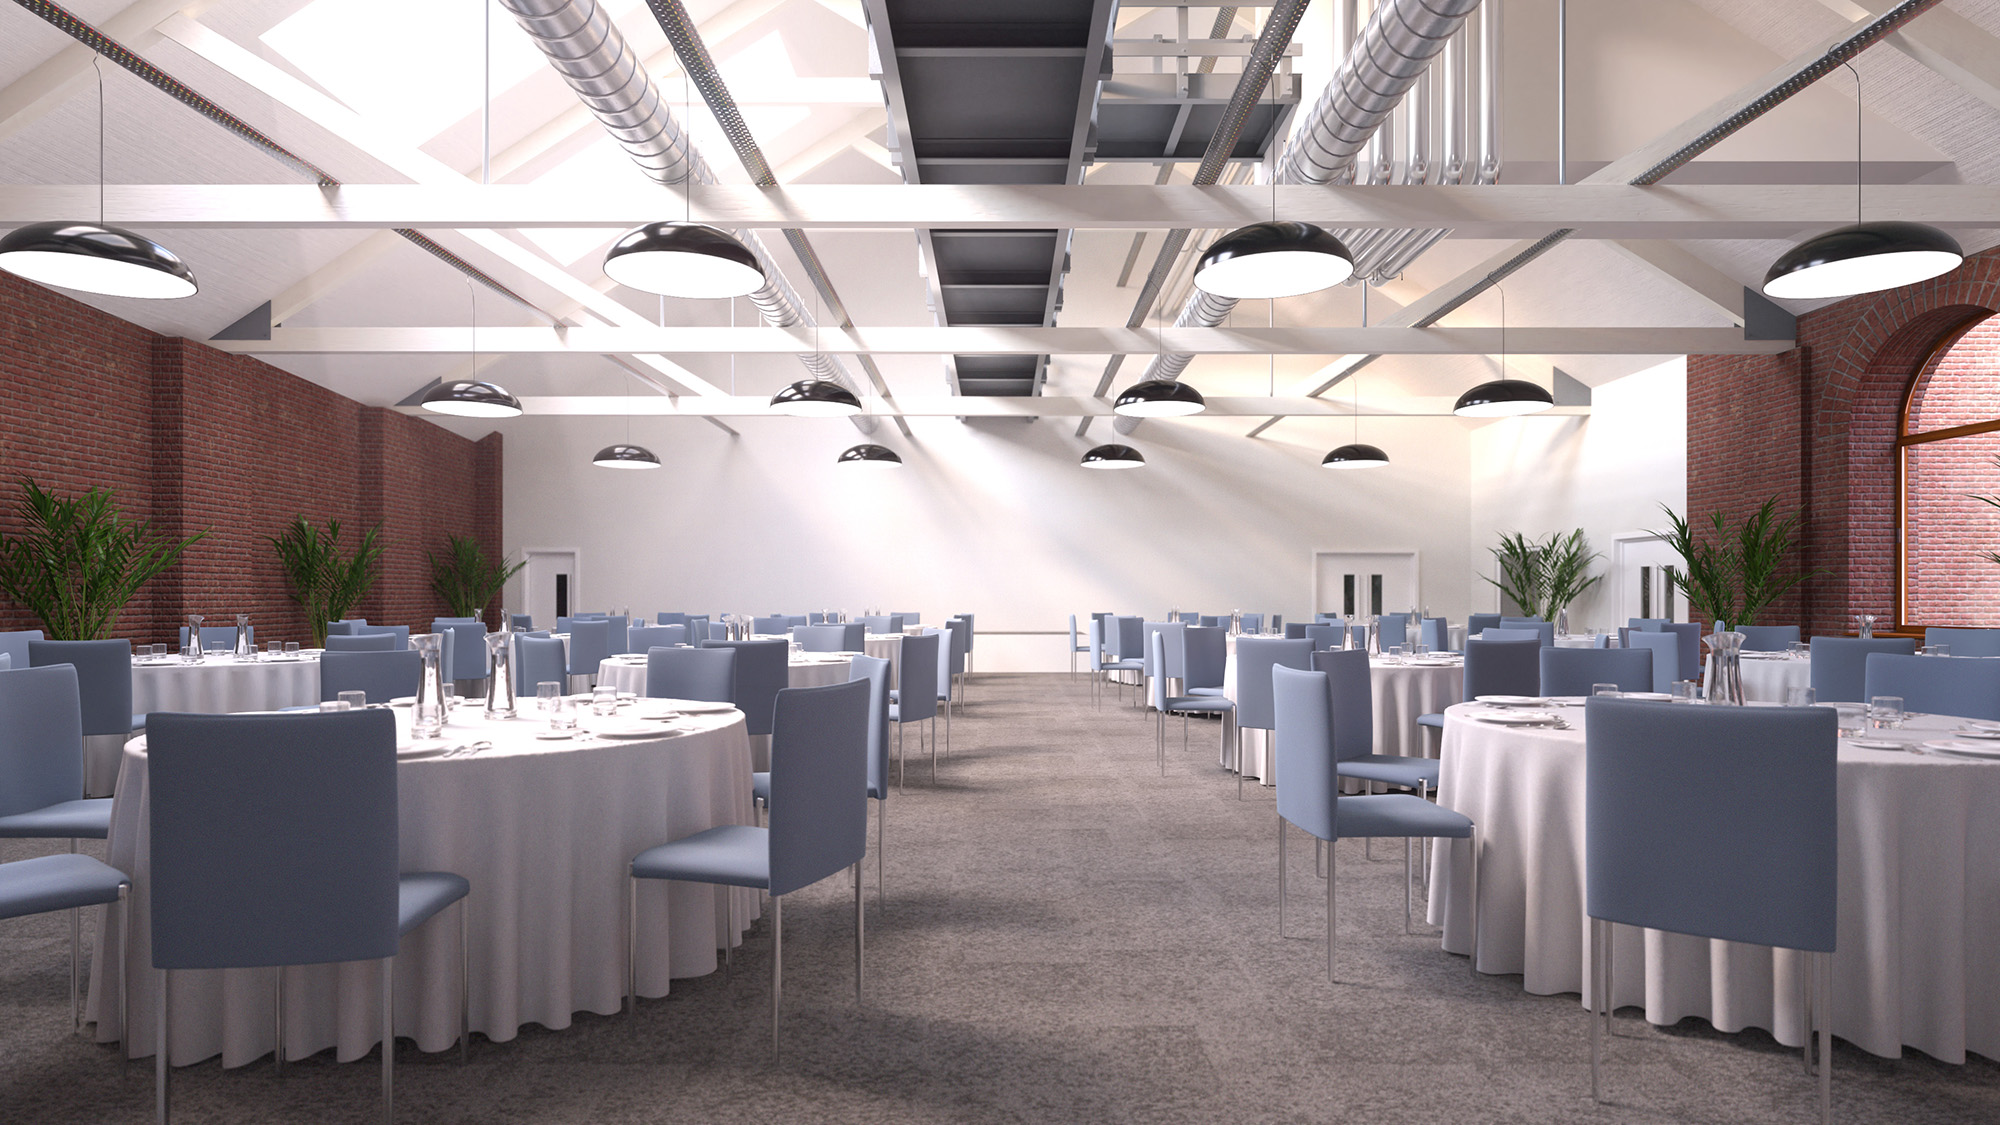 Dinner Rooms - Venue for Hire Details at 10 Union Street, London Bridge